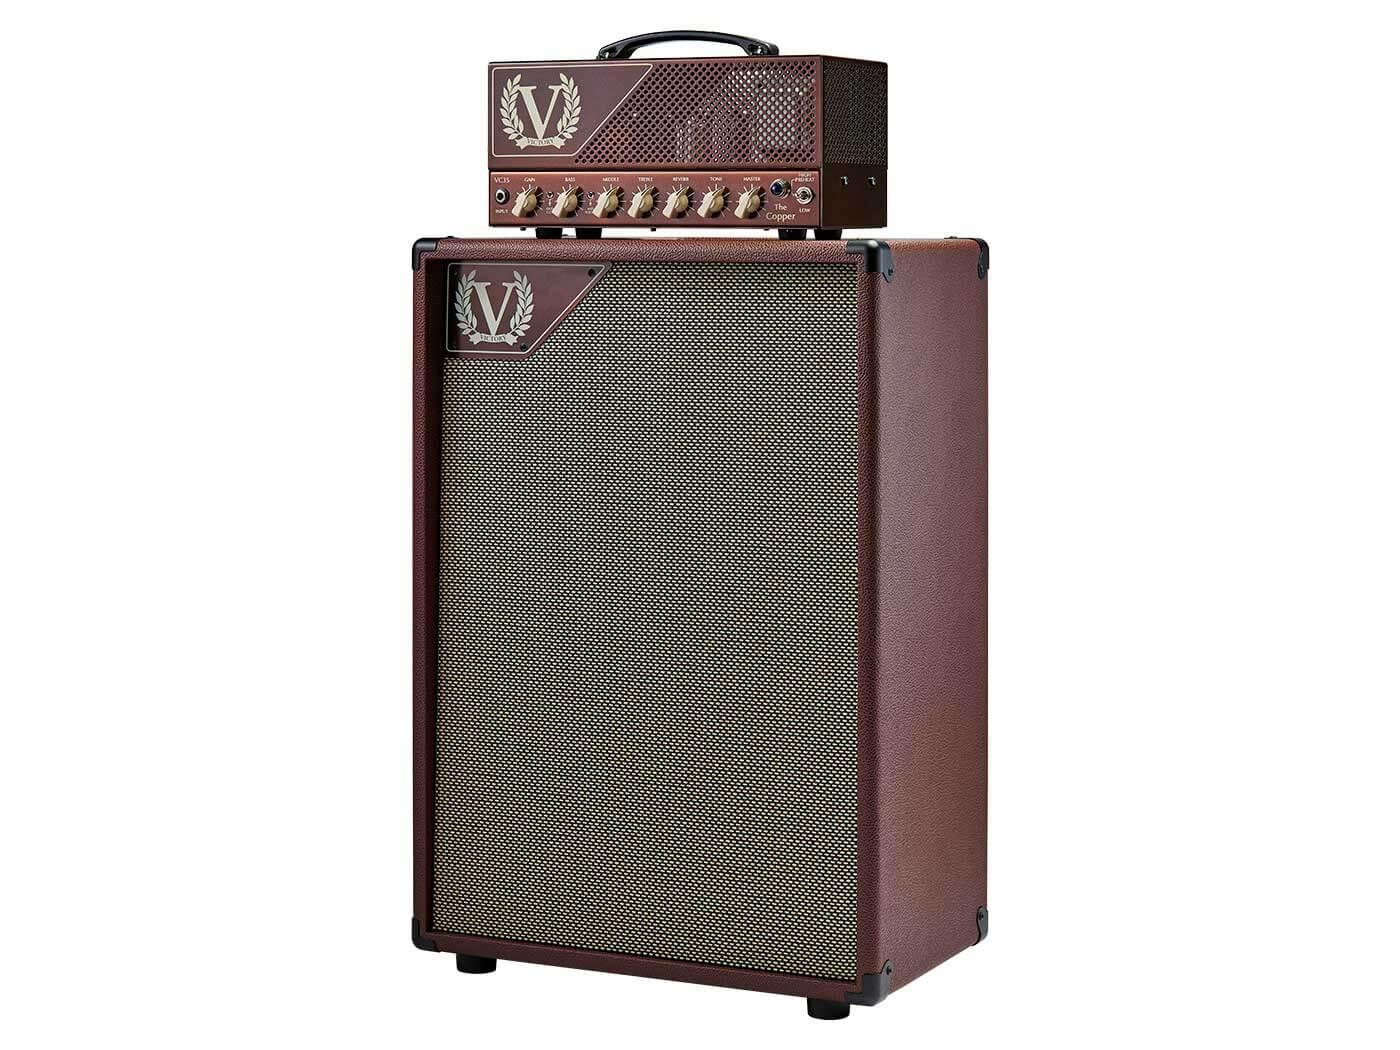 The Victory VC35 and matching 2x12.